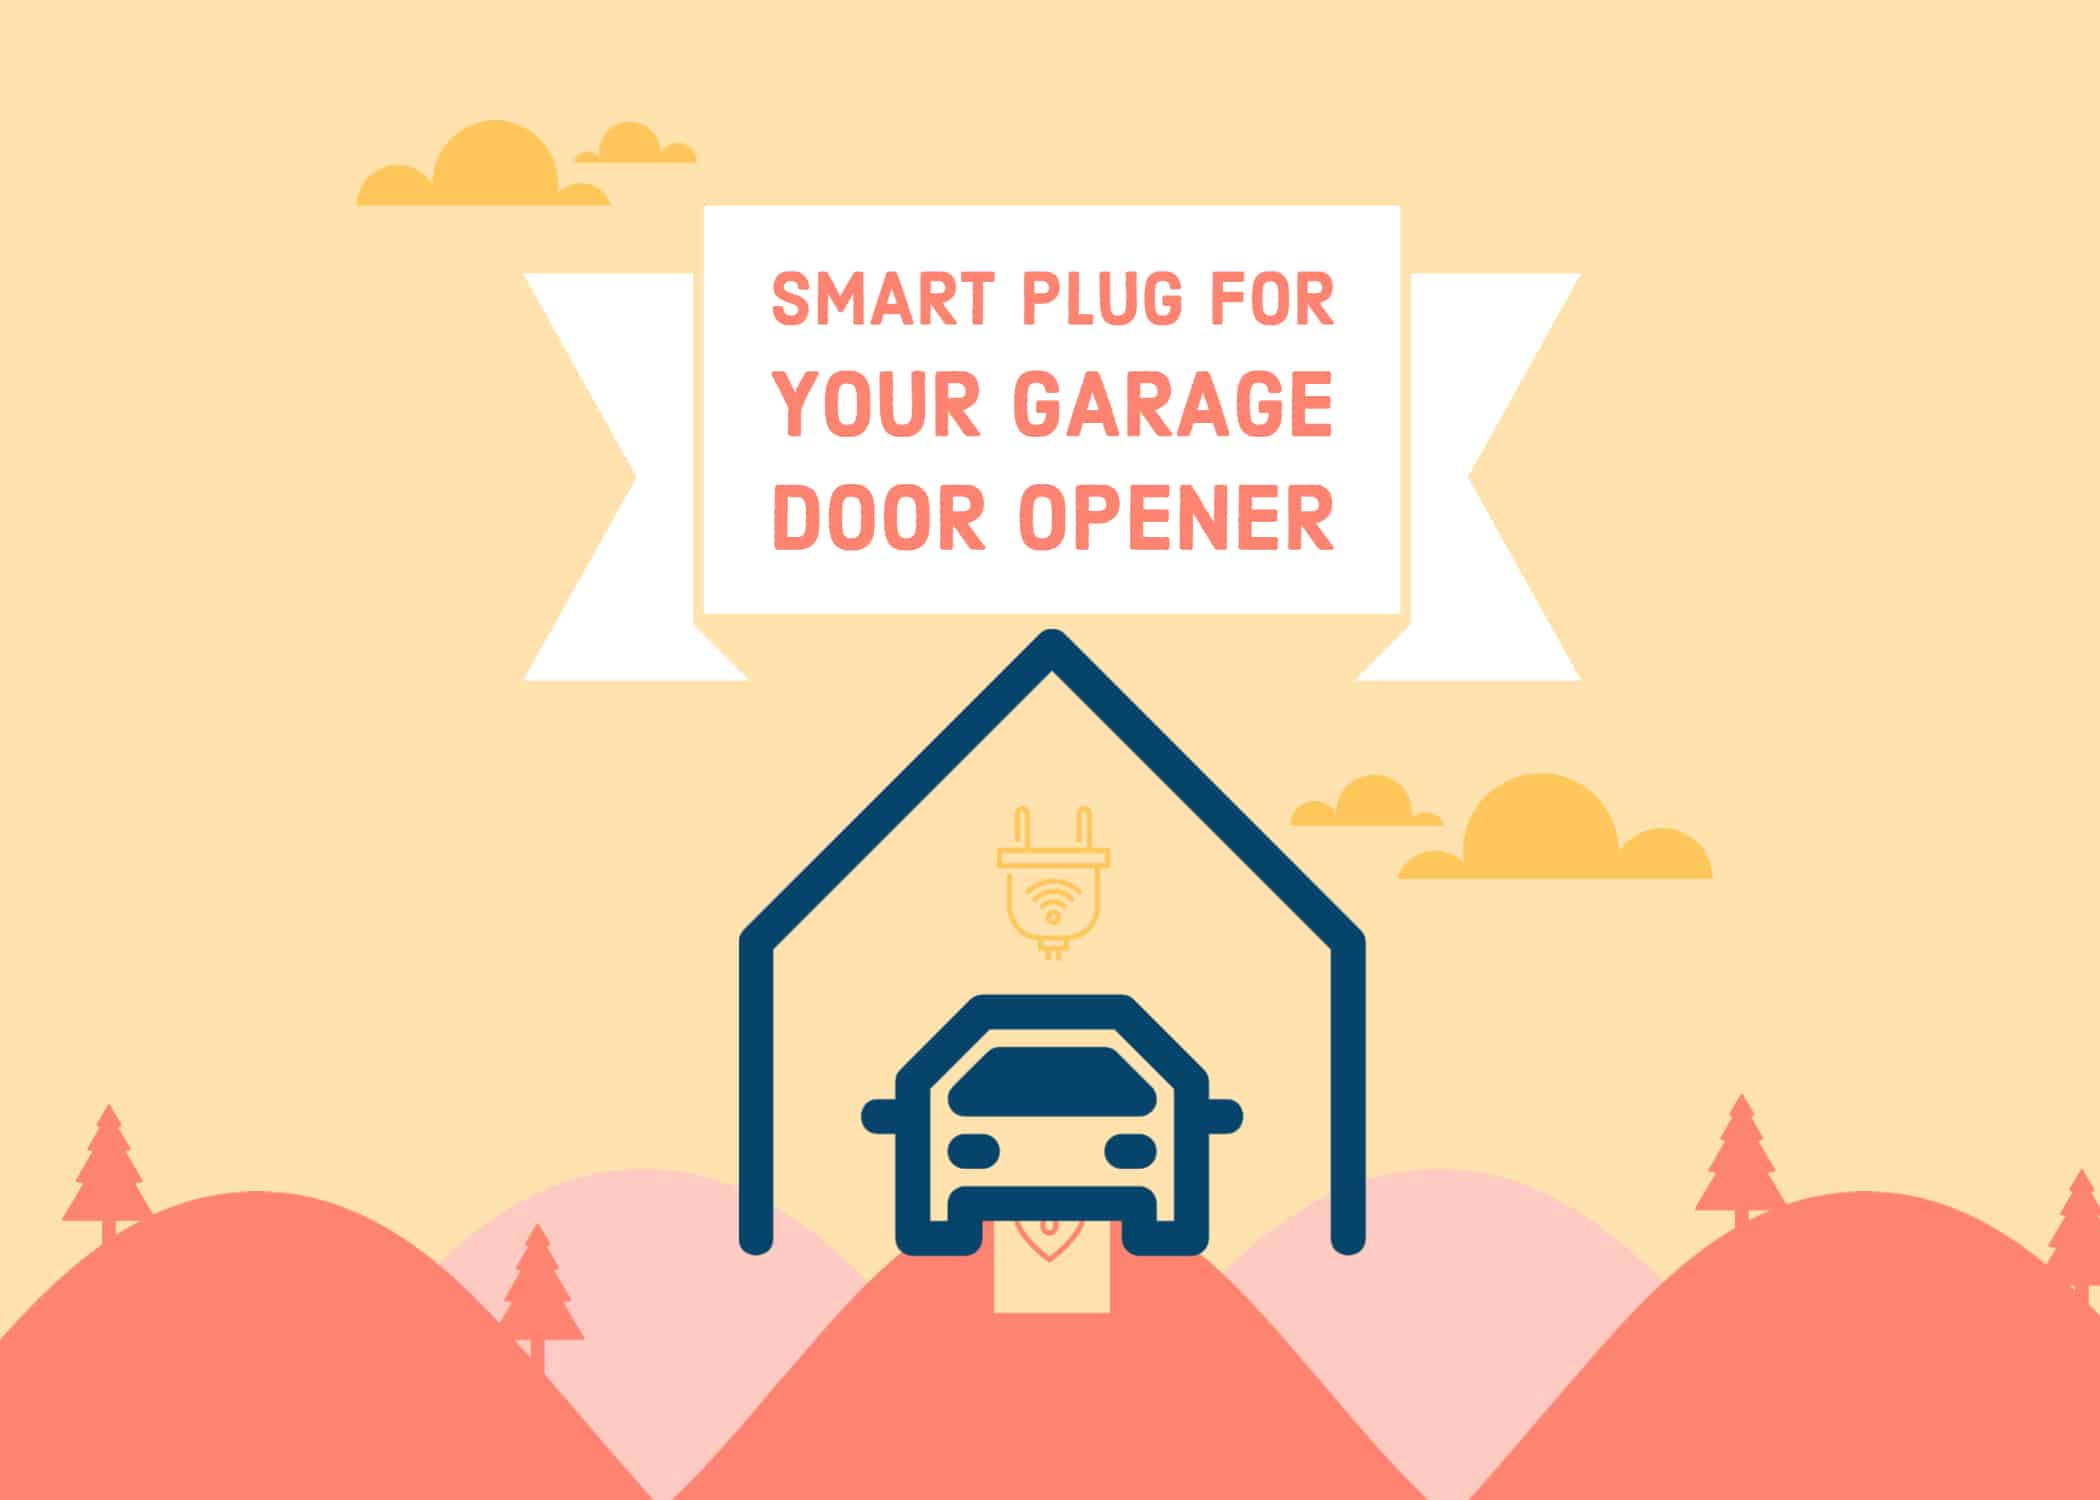 Can i use a smart plug for my garage door opener